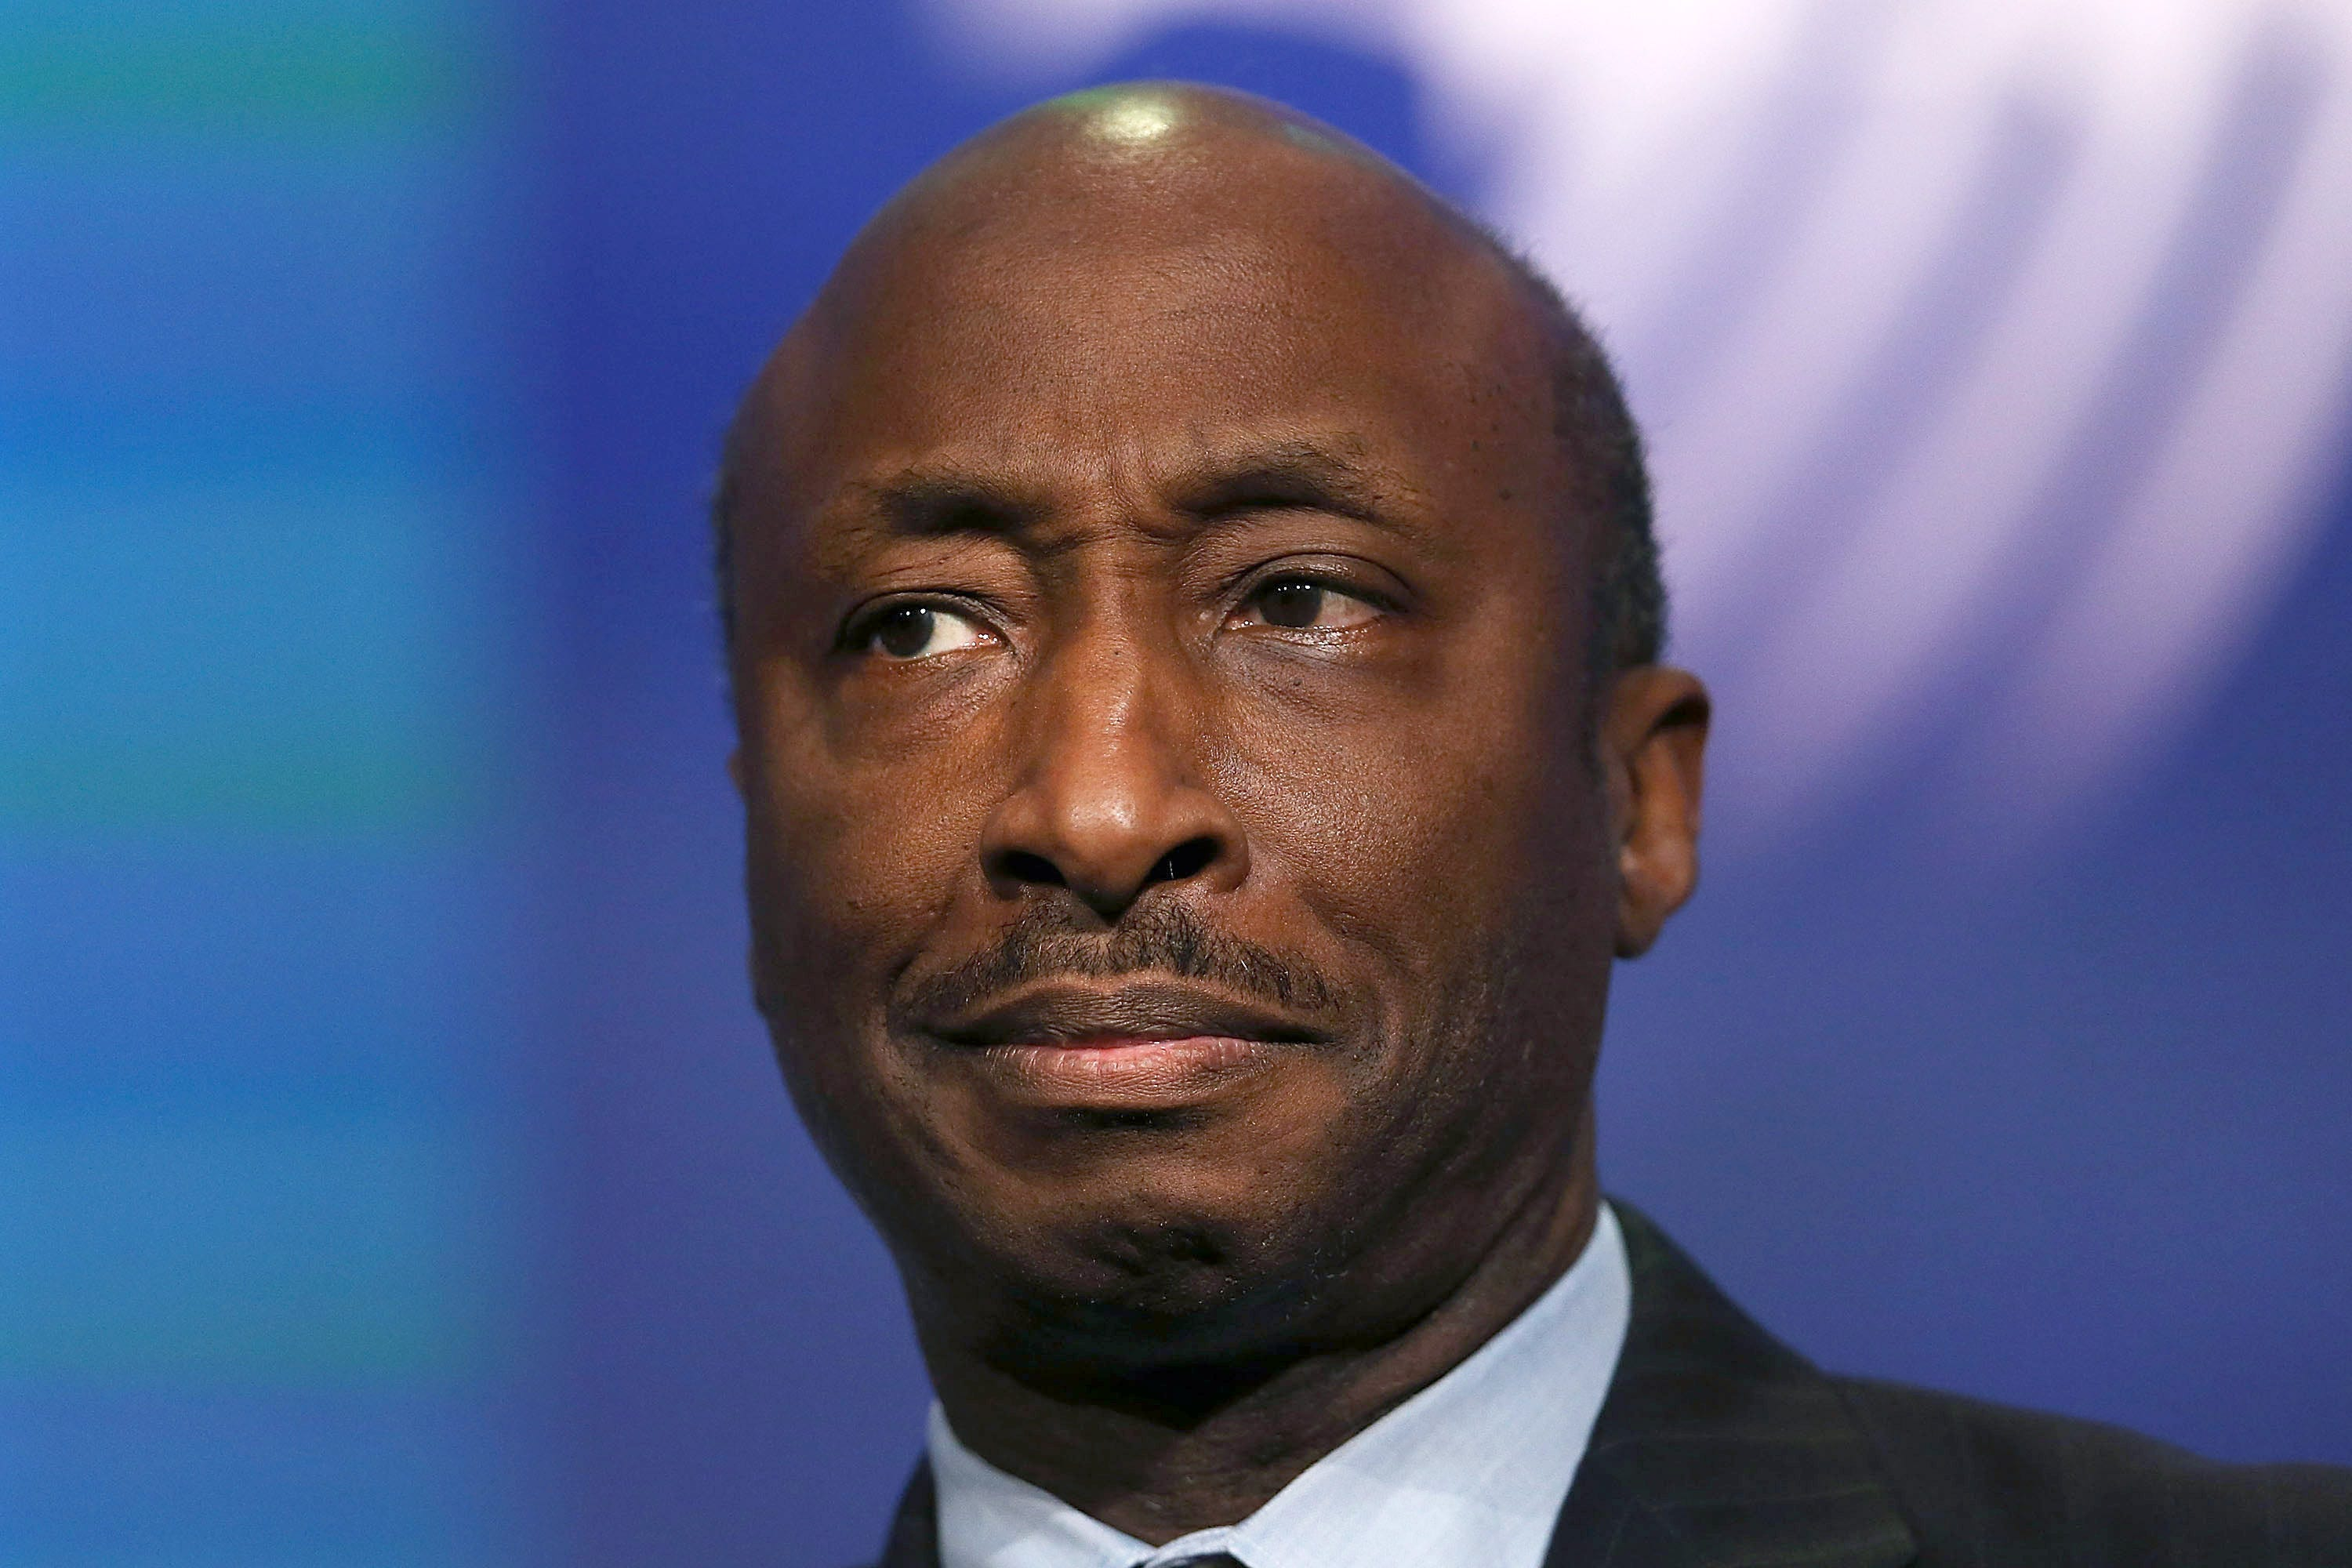 Kenneth Frazier, chairman and CEO of pharmaceutical company Merck & Co.